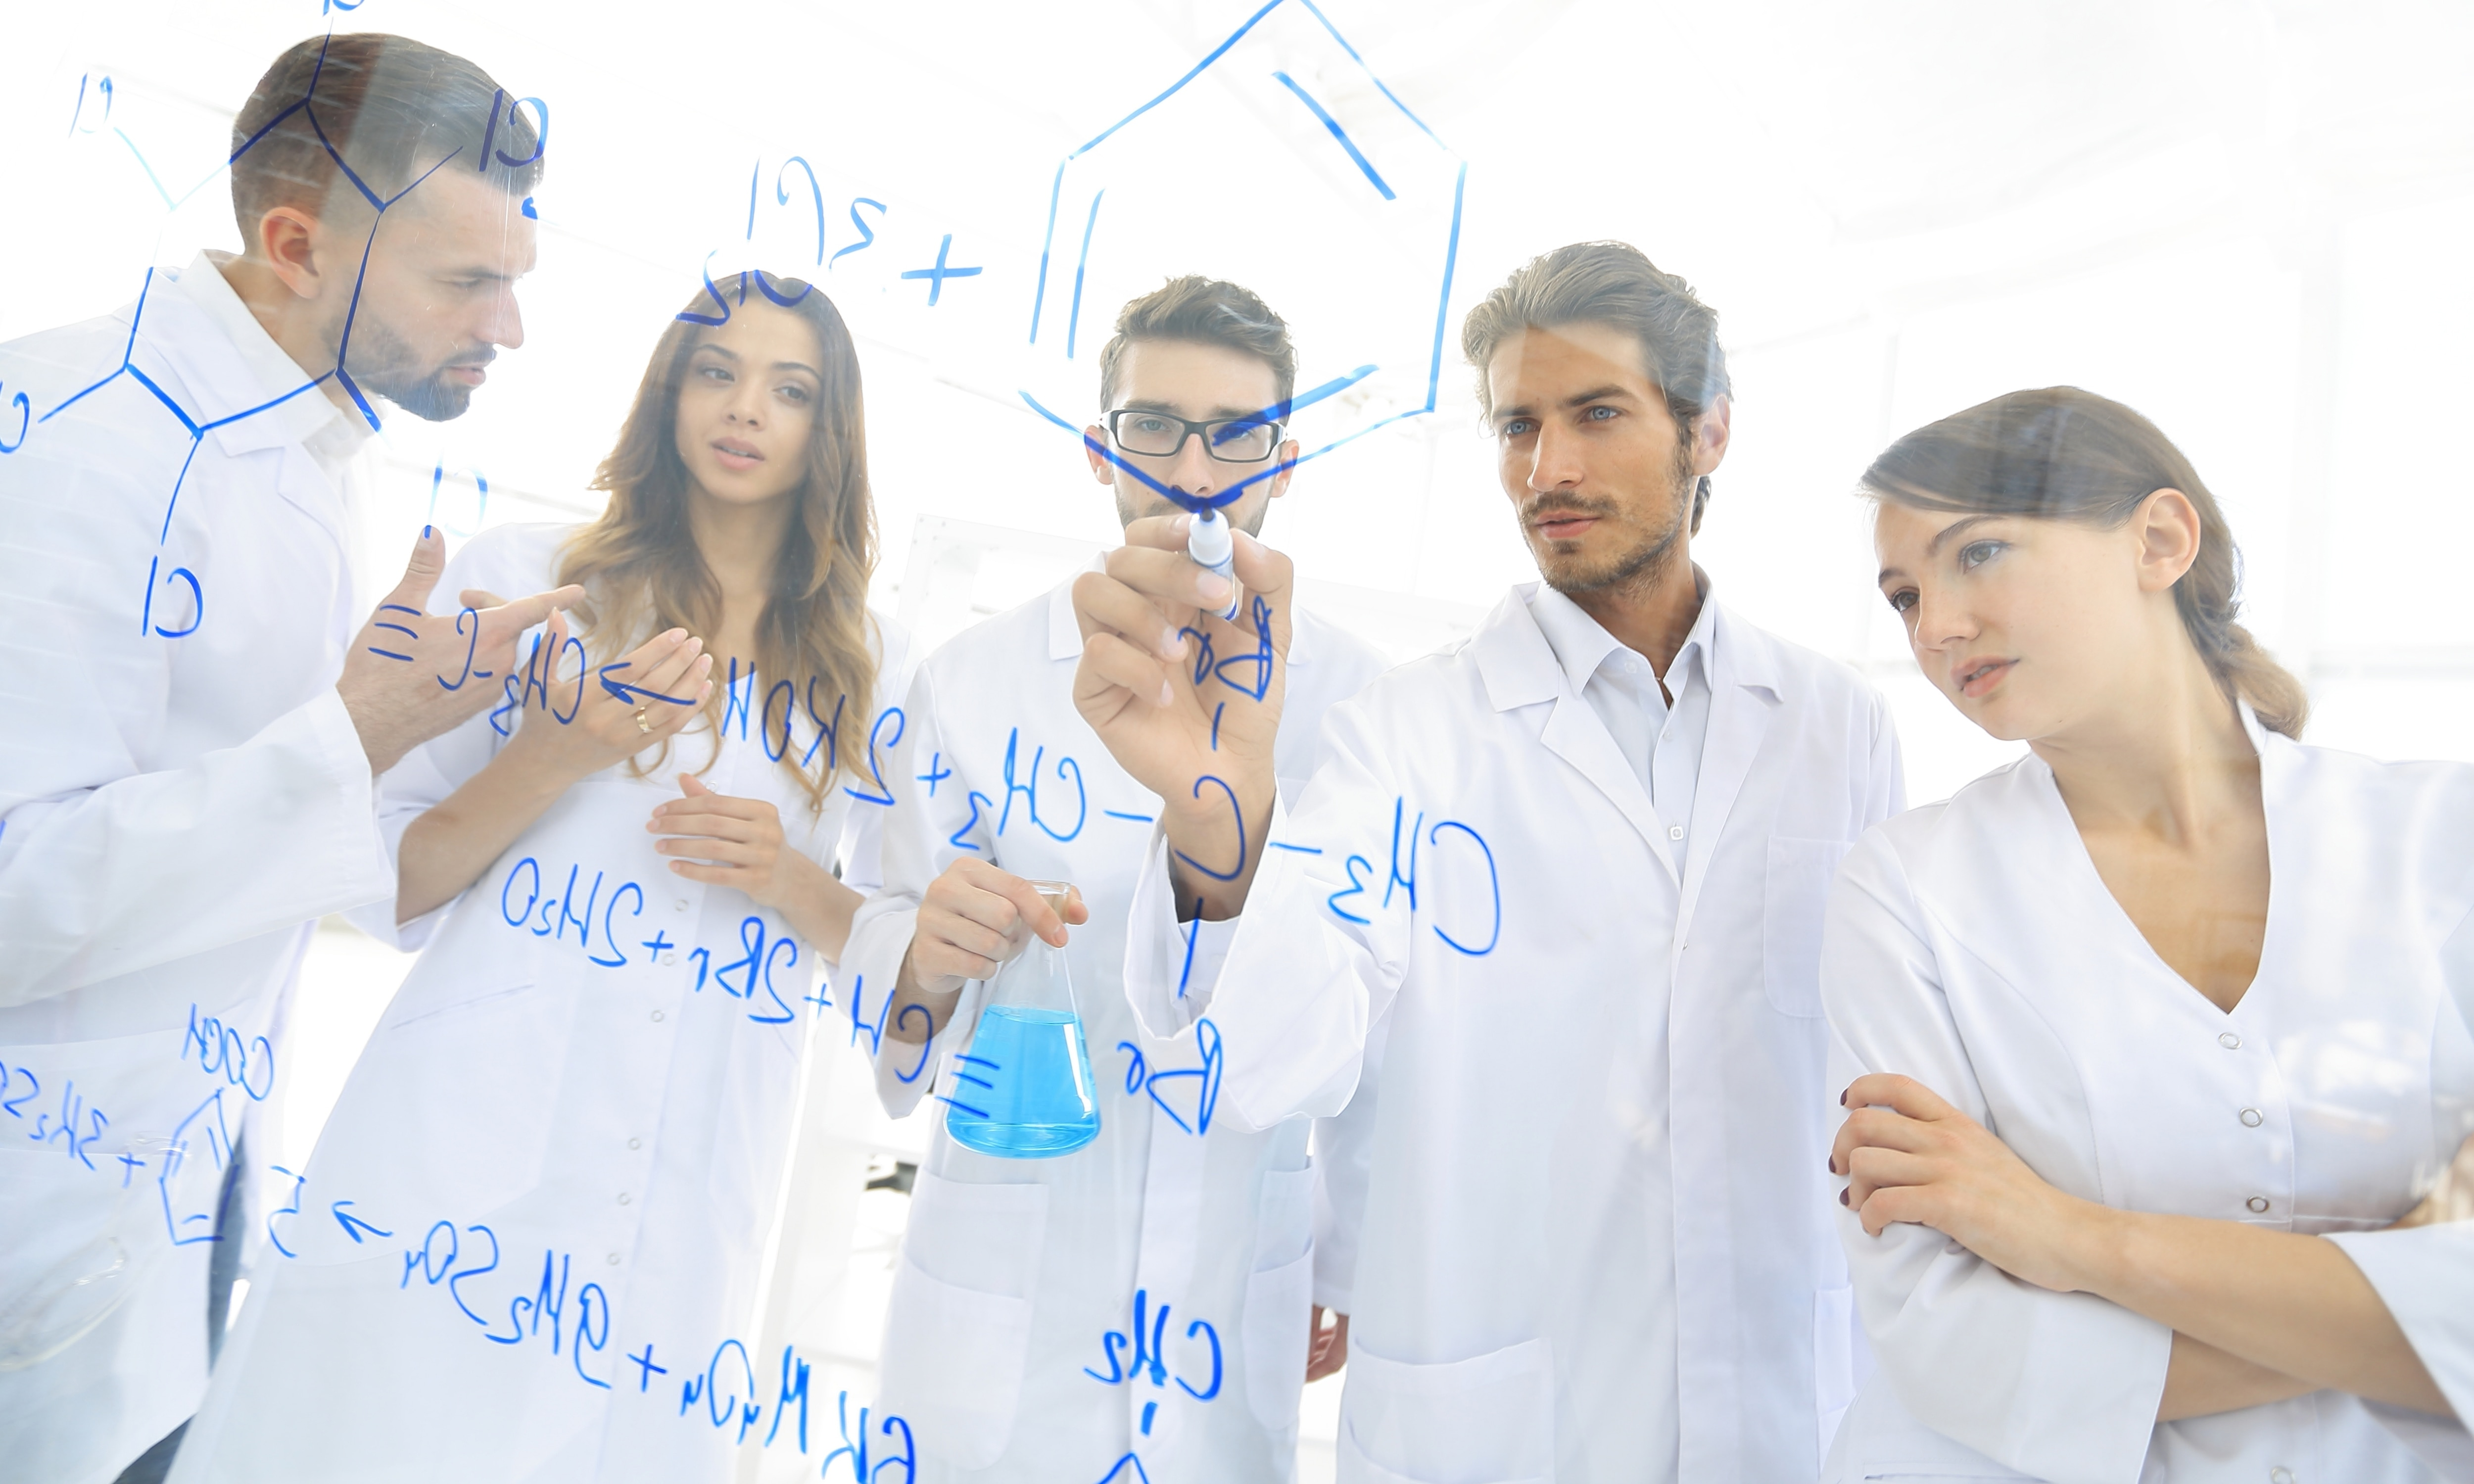 general-view seen trough a transparent board in a chemistry lab of people analyzing information - Image